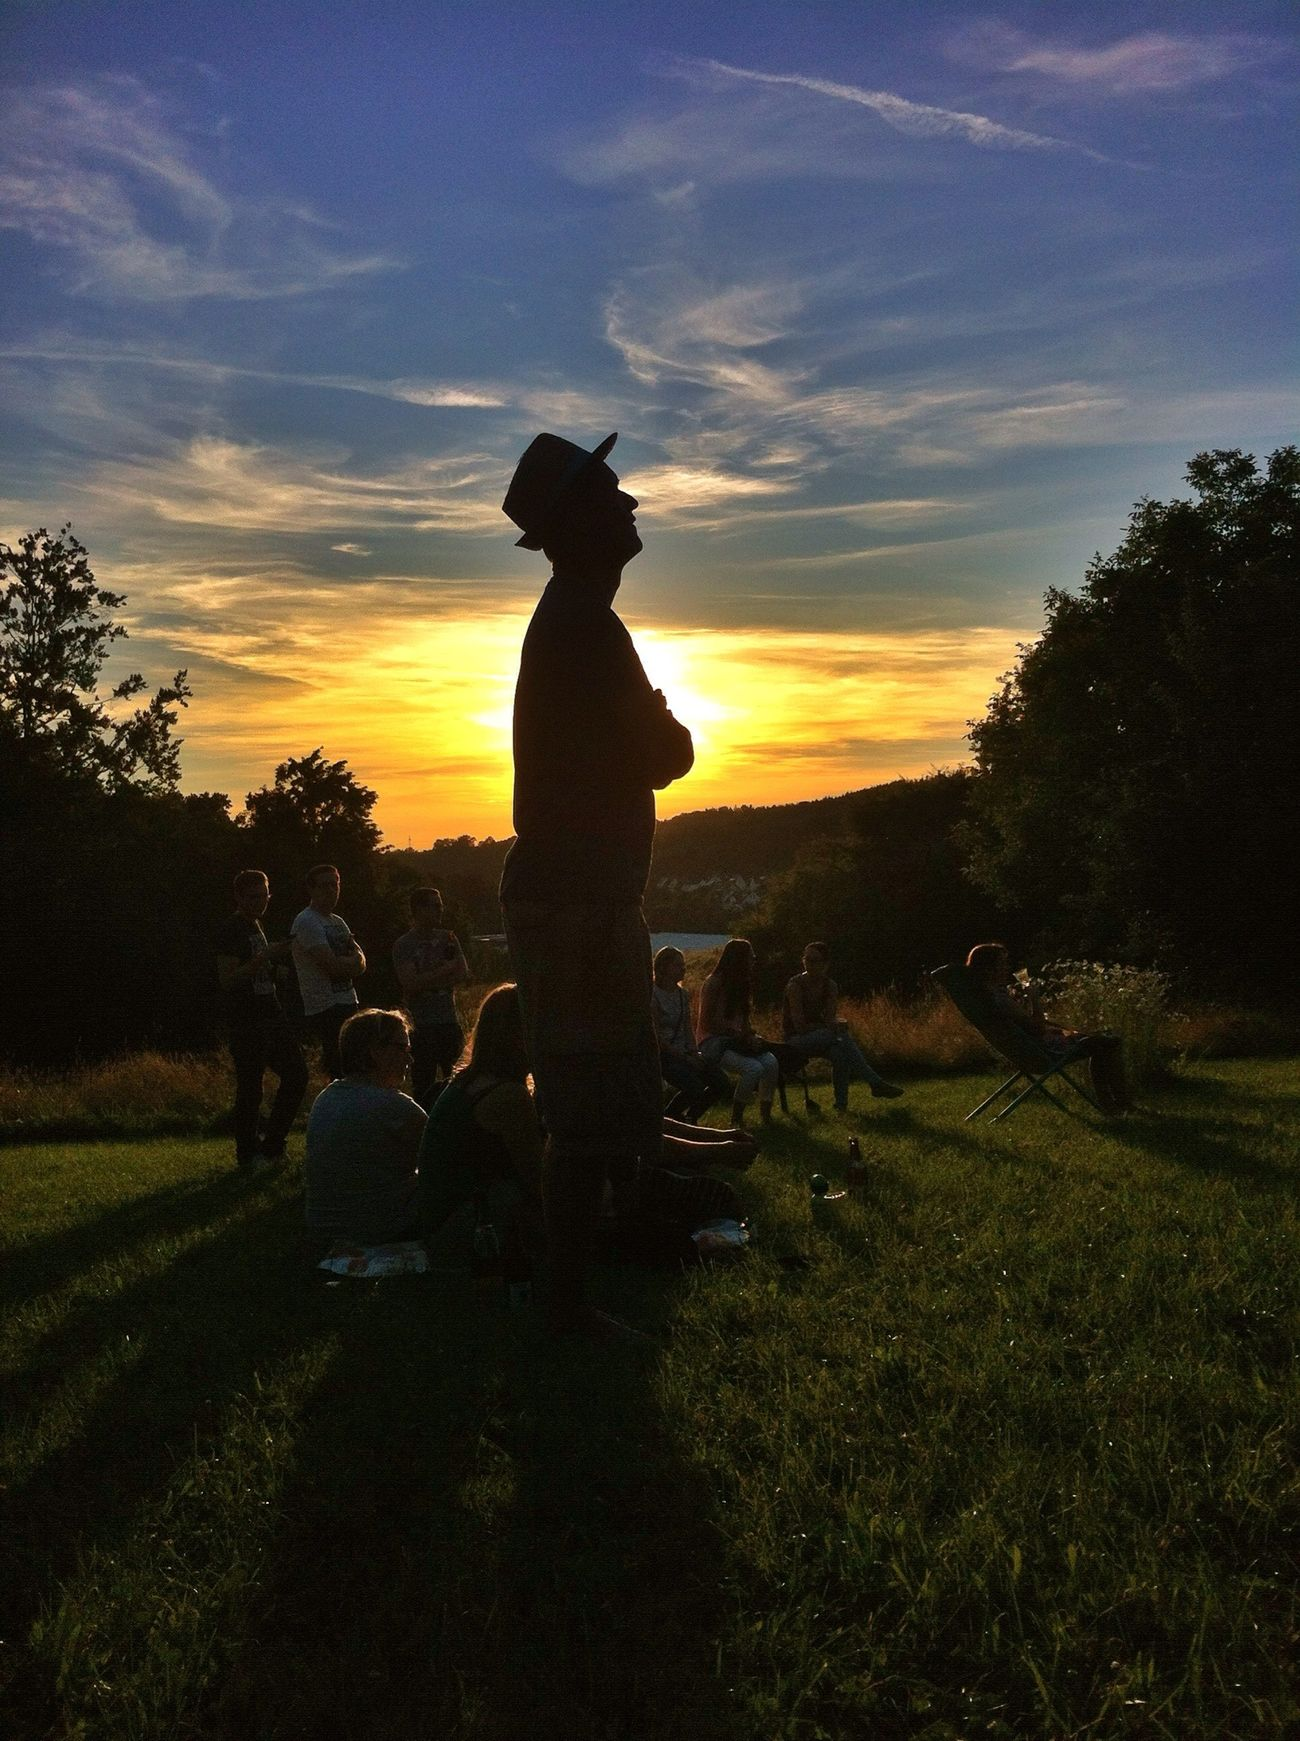 Sunset Sunset Silhouettes Open Air Life Music in the Evening Evening Sky Event Listening To Music Listening Silhouette